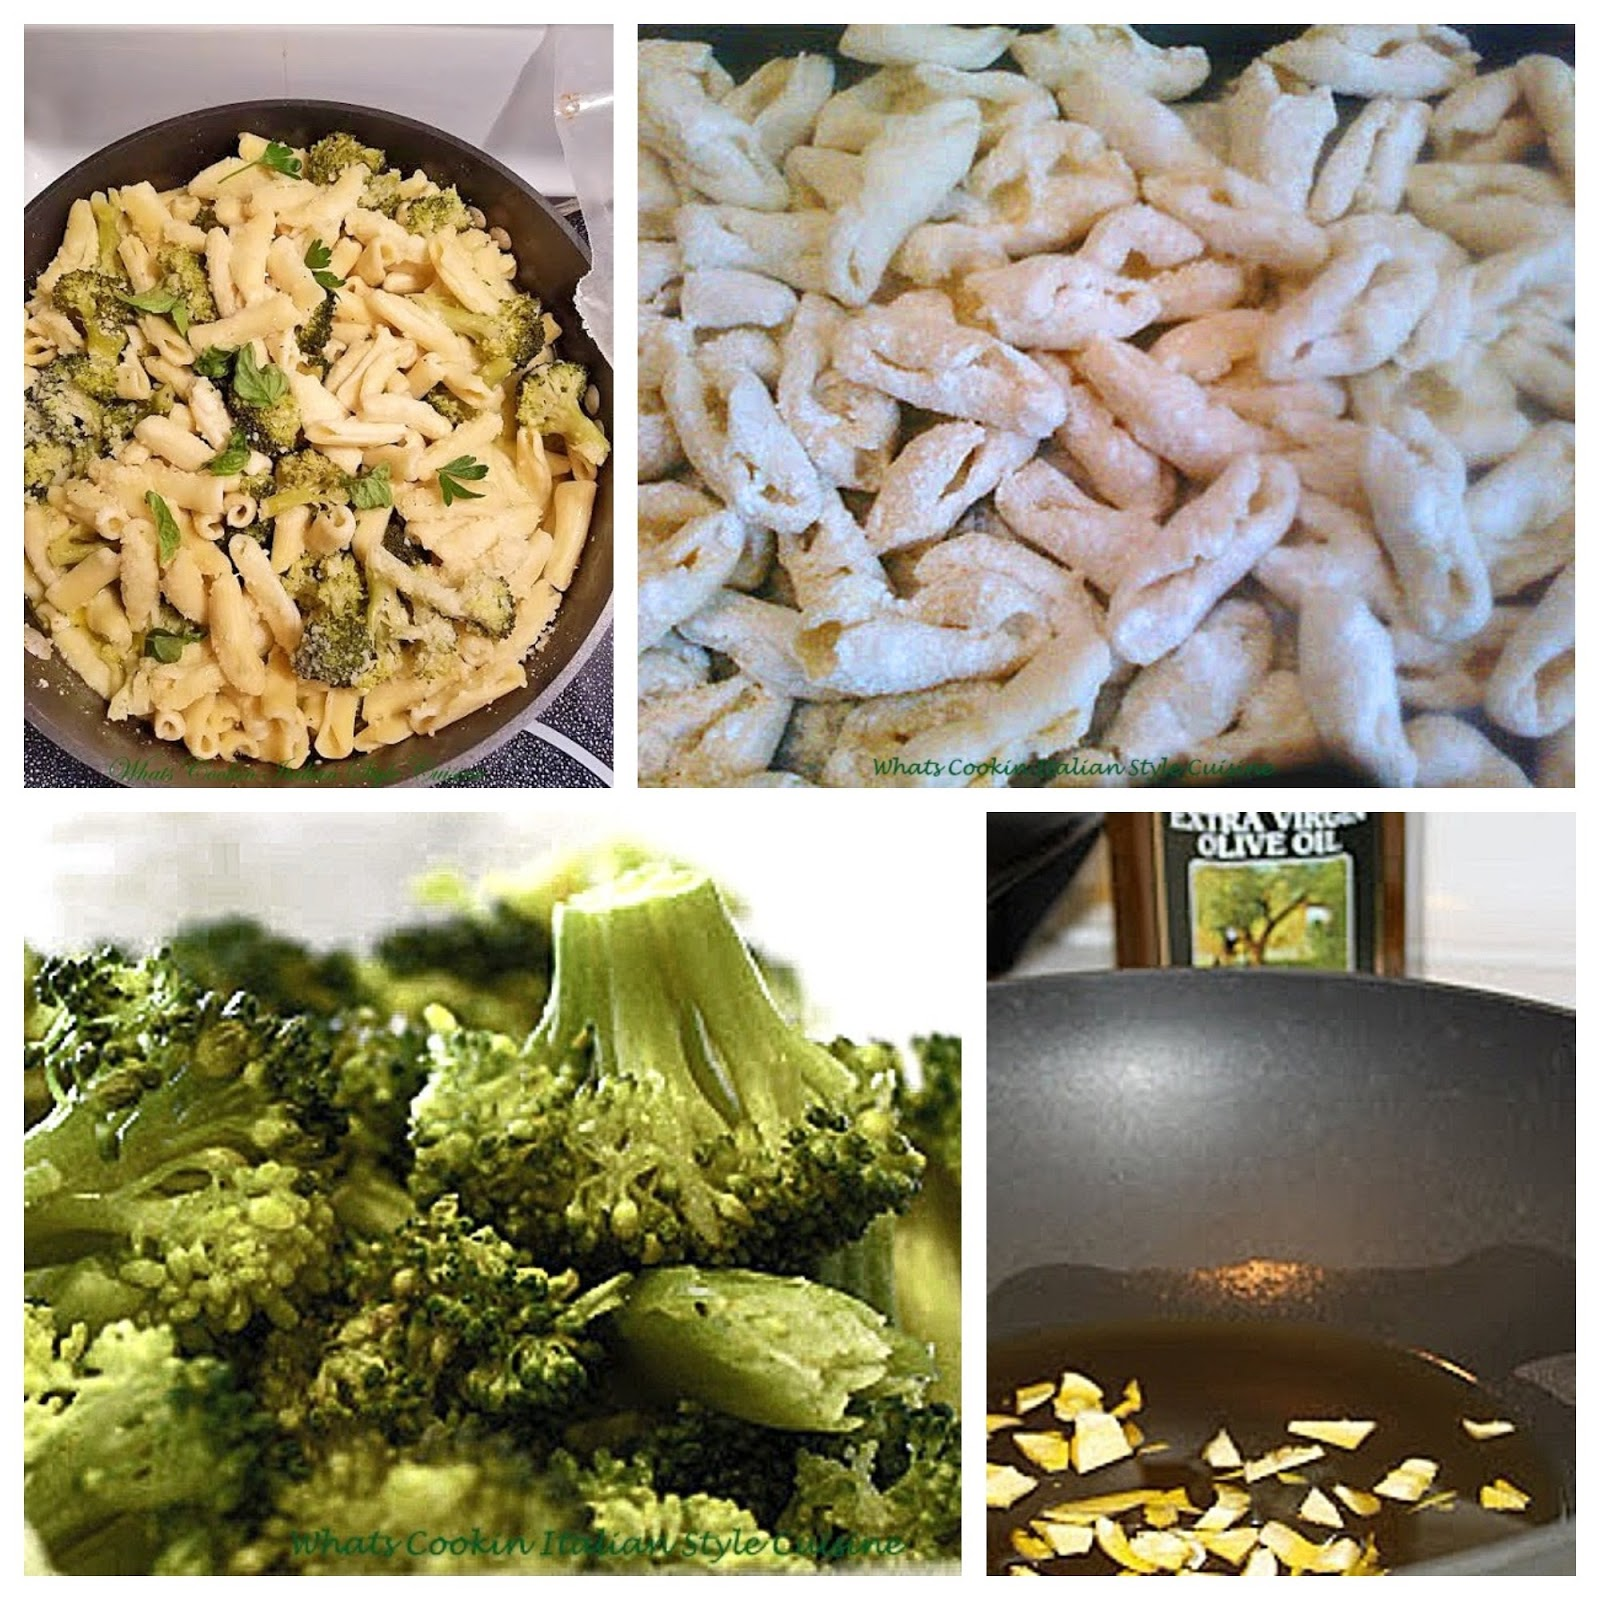 A lighter pasta meal that is rich with a light olive oil sauce and broccoli. This is a homemade Italian pasta made with ricotta cheese, broccoli and garlic. It is a gourmet style lighter pasta with what is referred to as a white garlic sauce it contains no cream. This pasta is delicious served as a whole meal or side dish